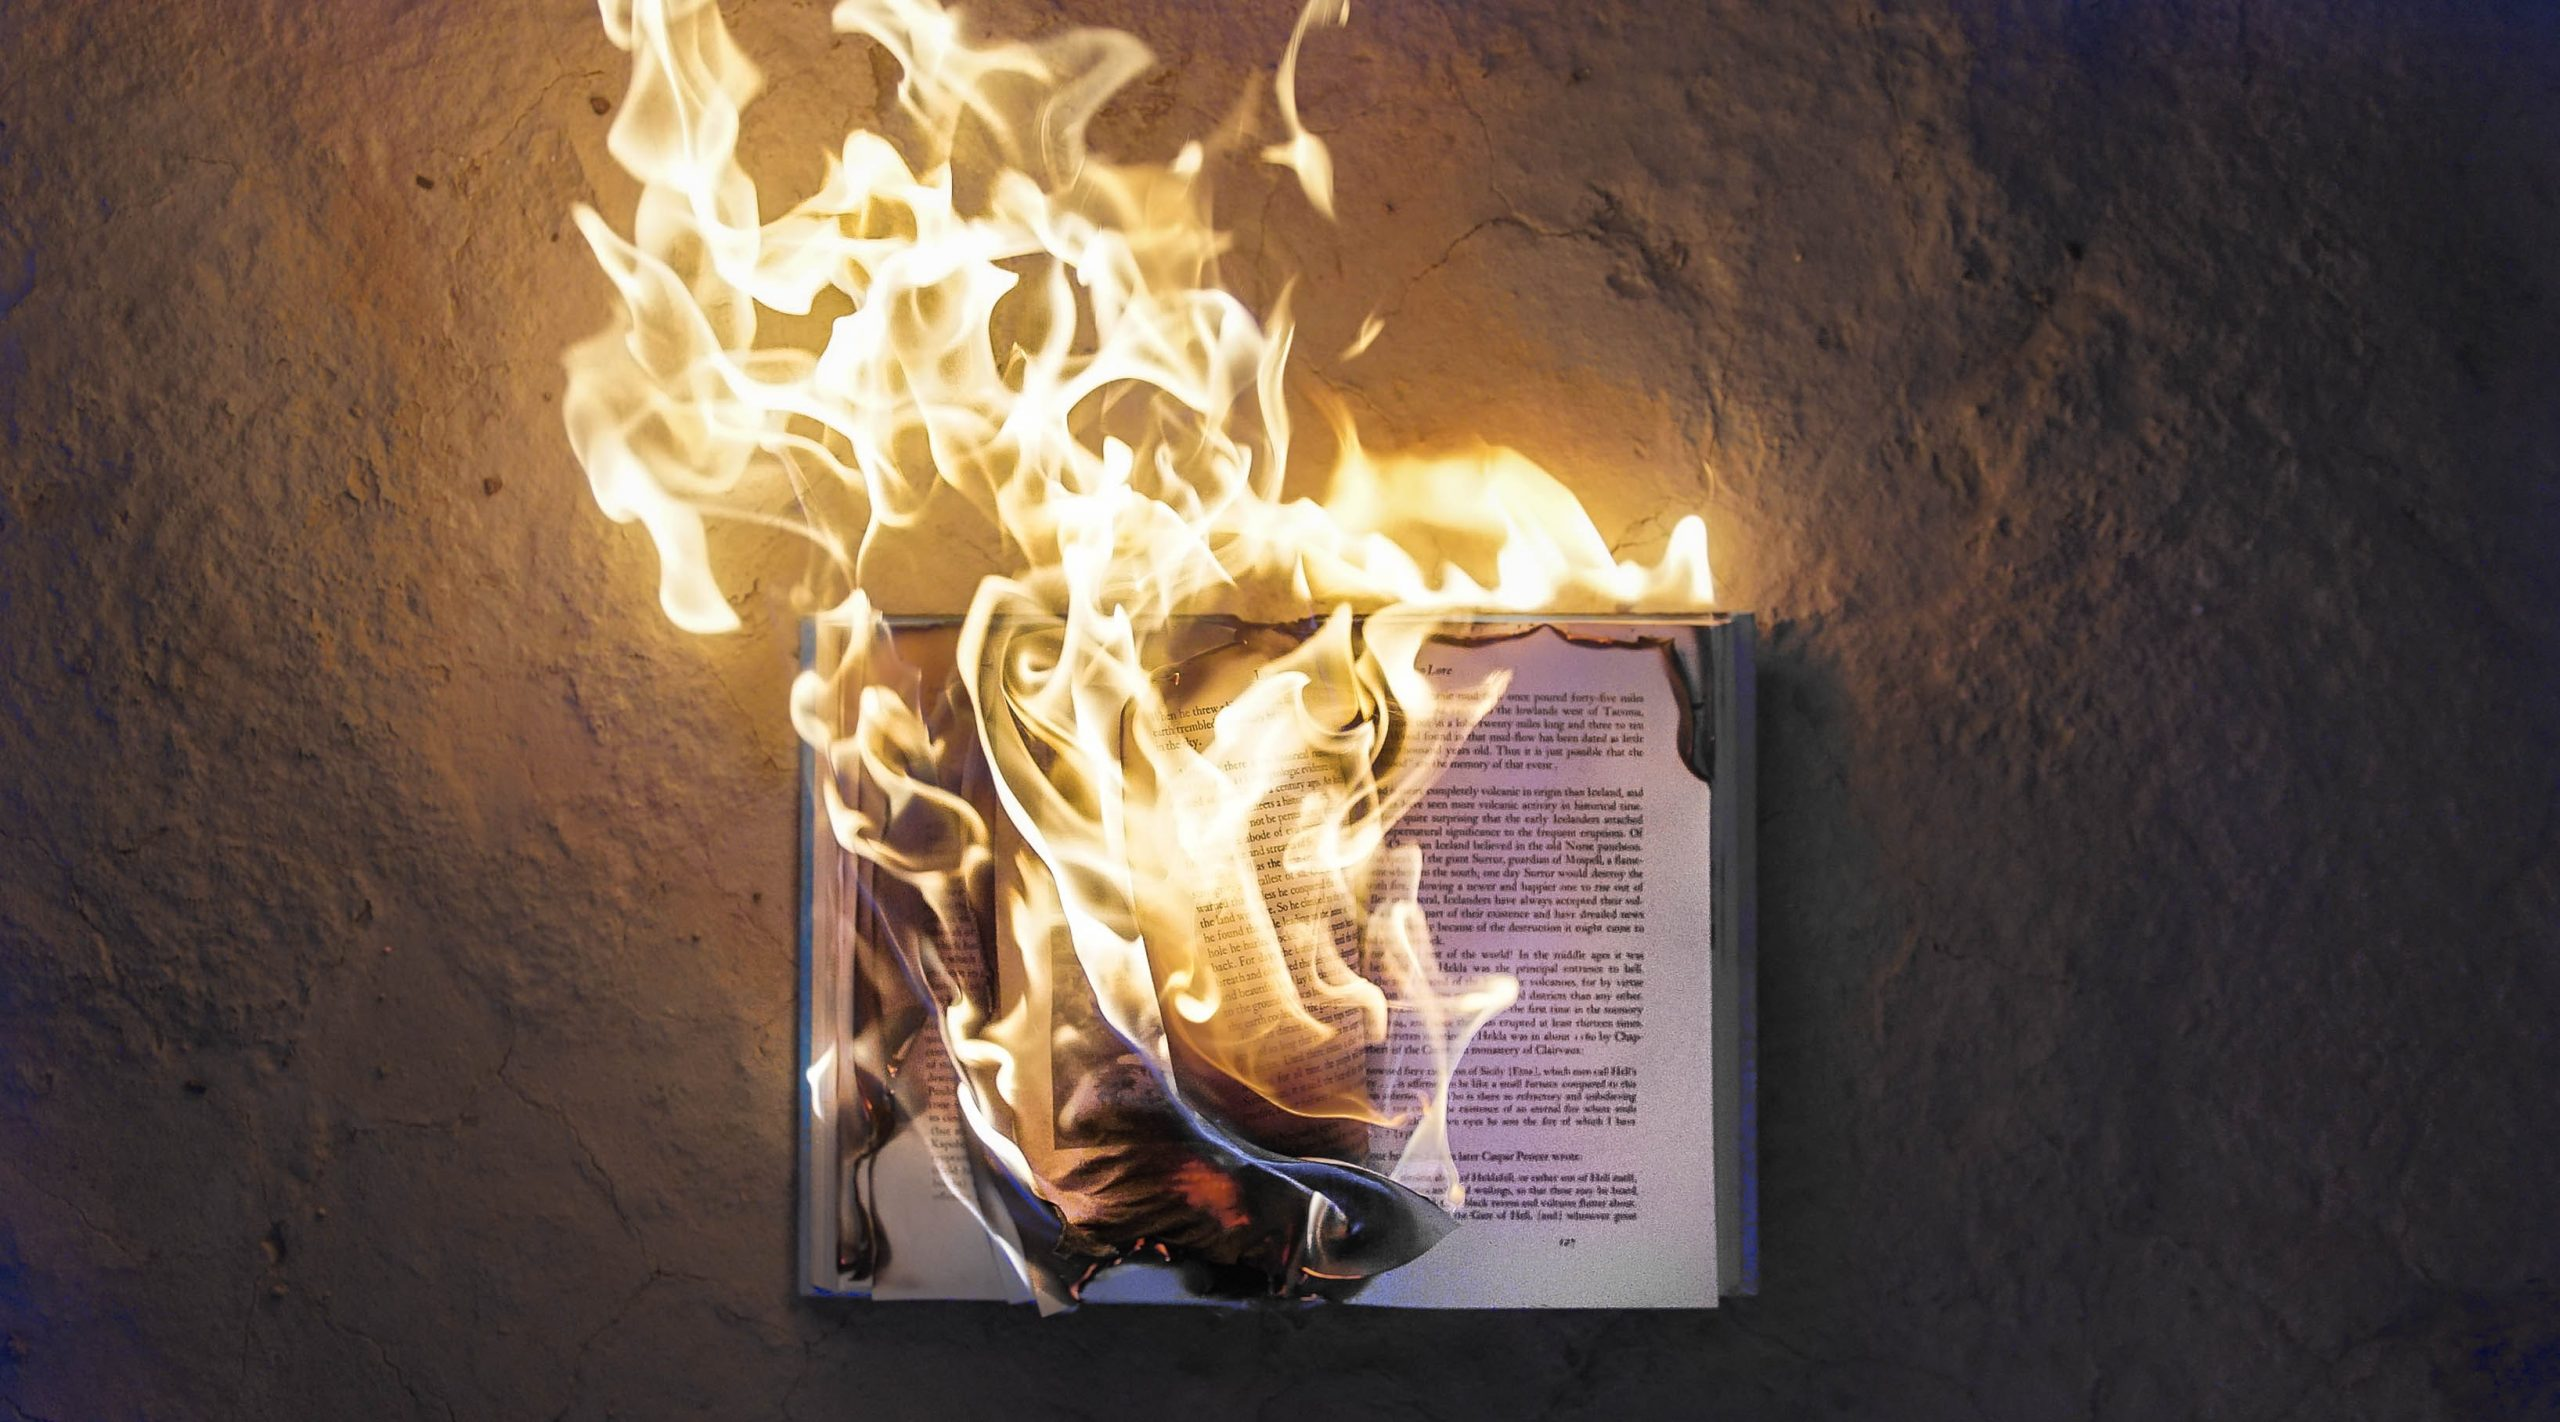 color photograph of an open book on fire